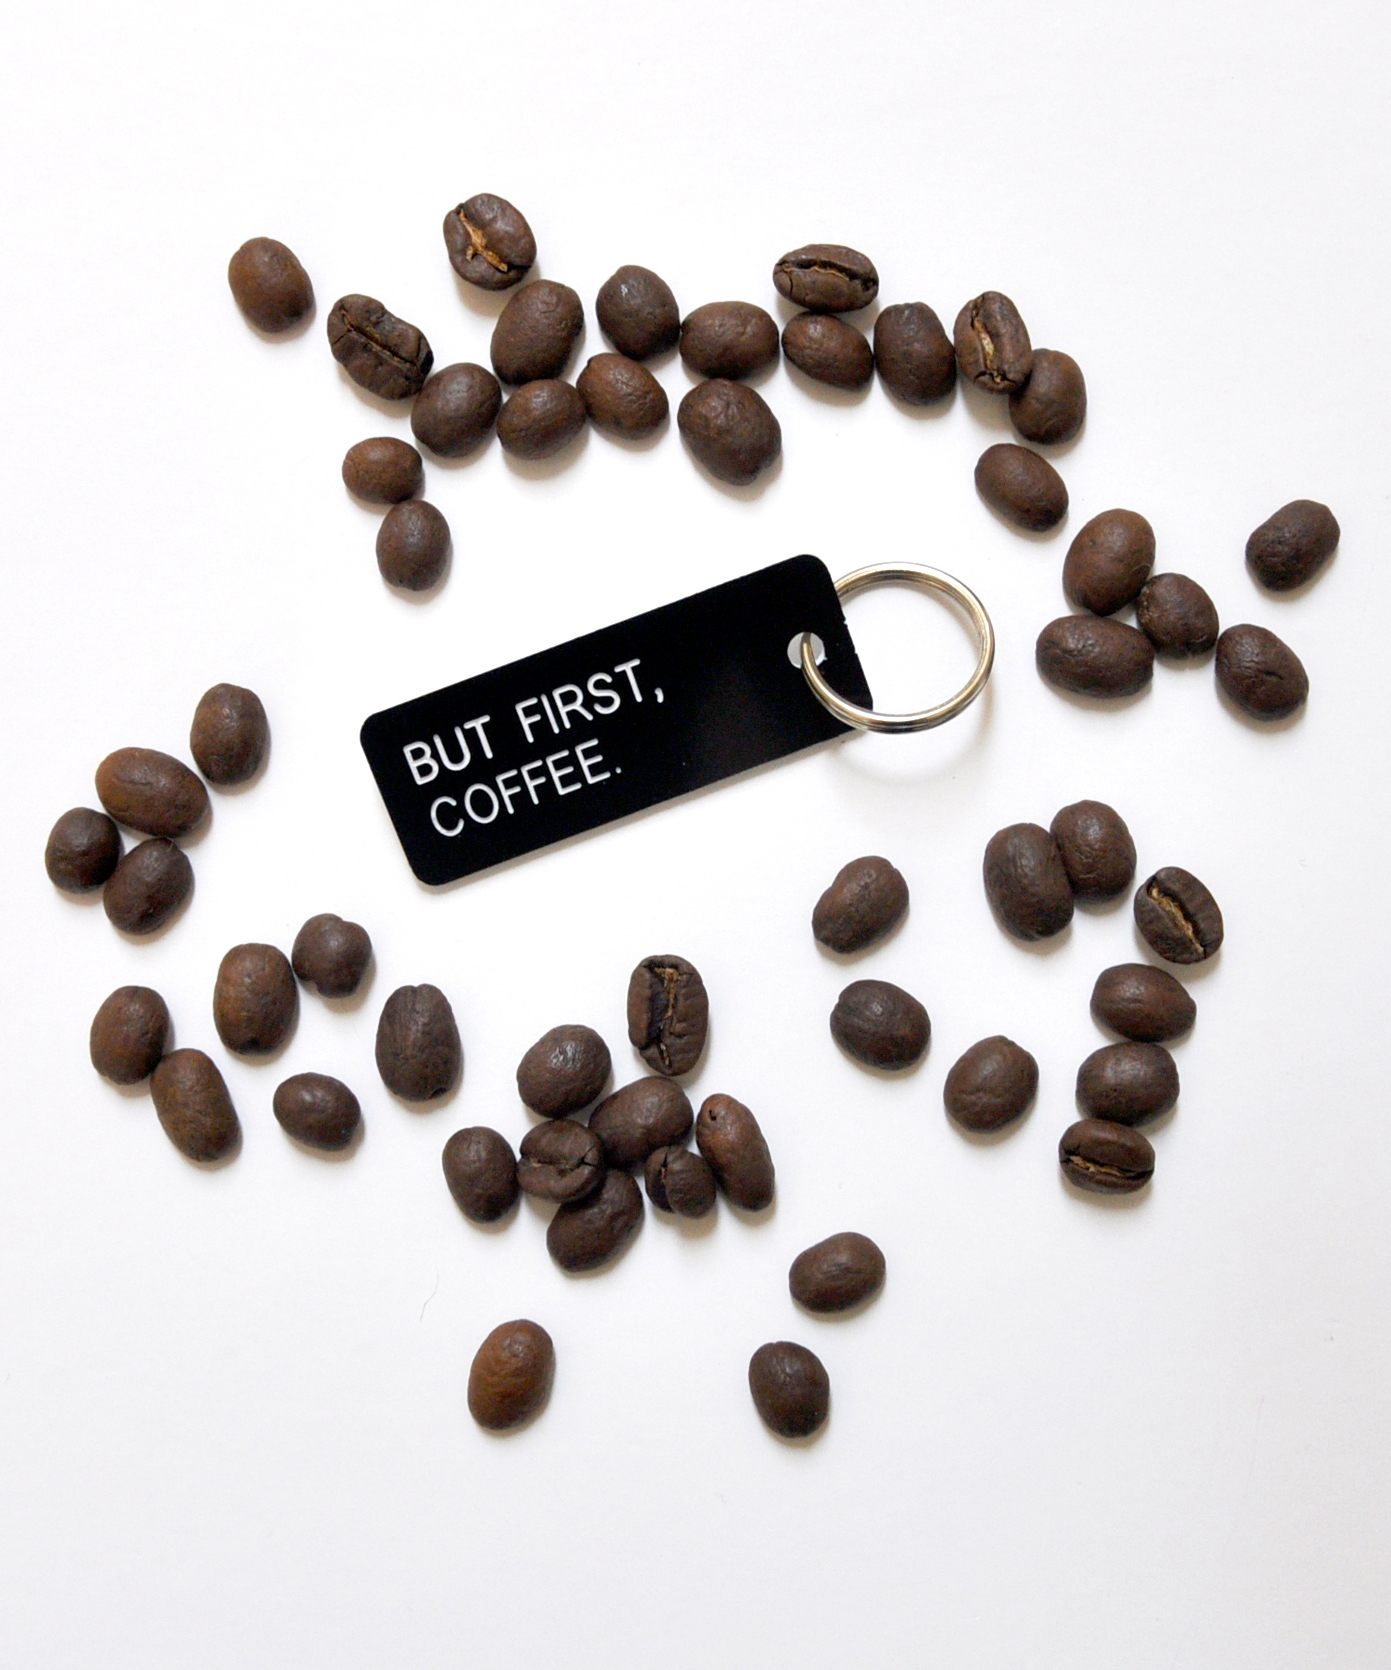 swellmadeco-coffee-keytag.jpg